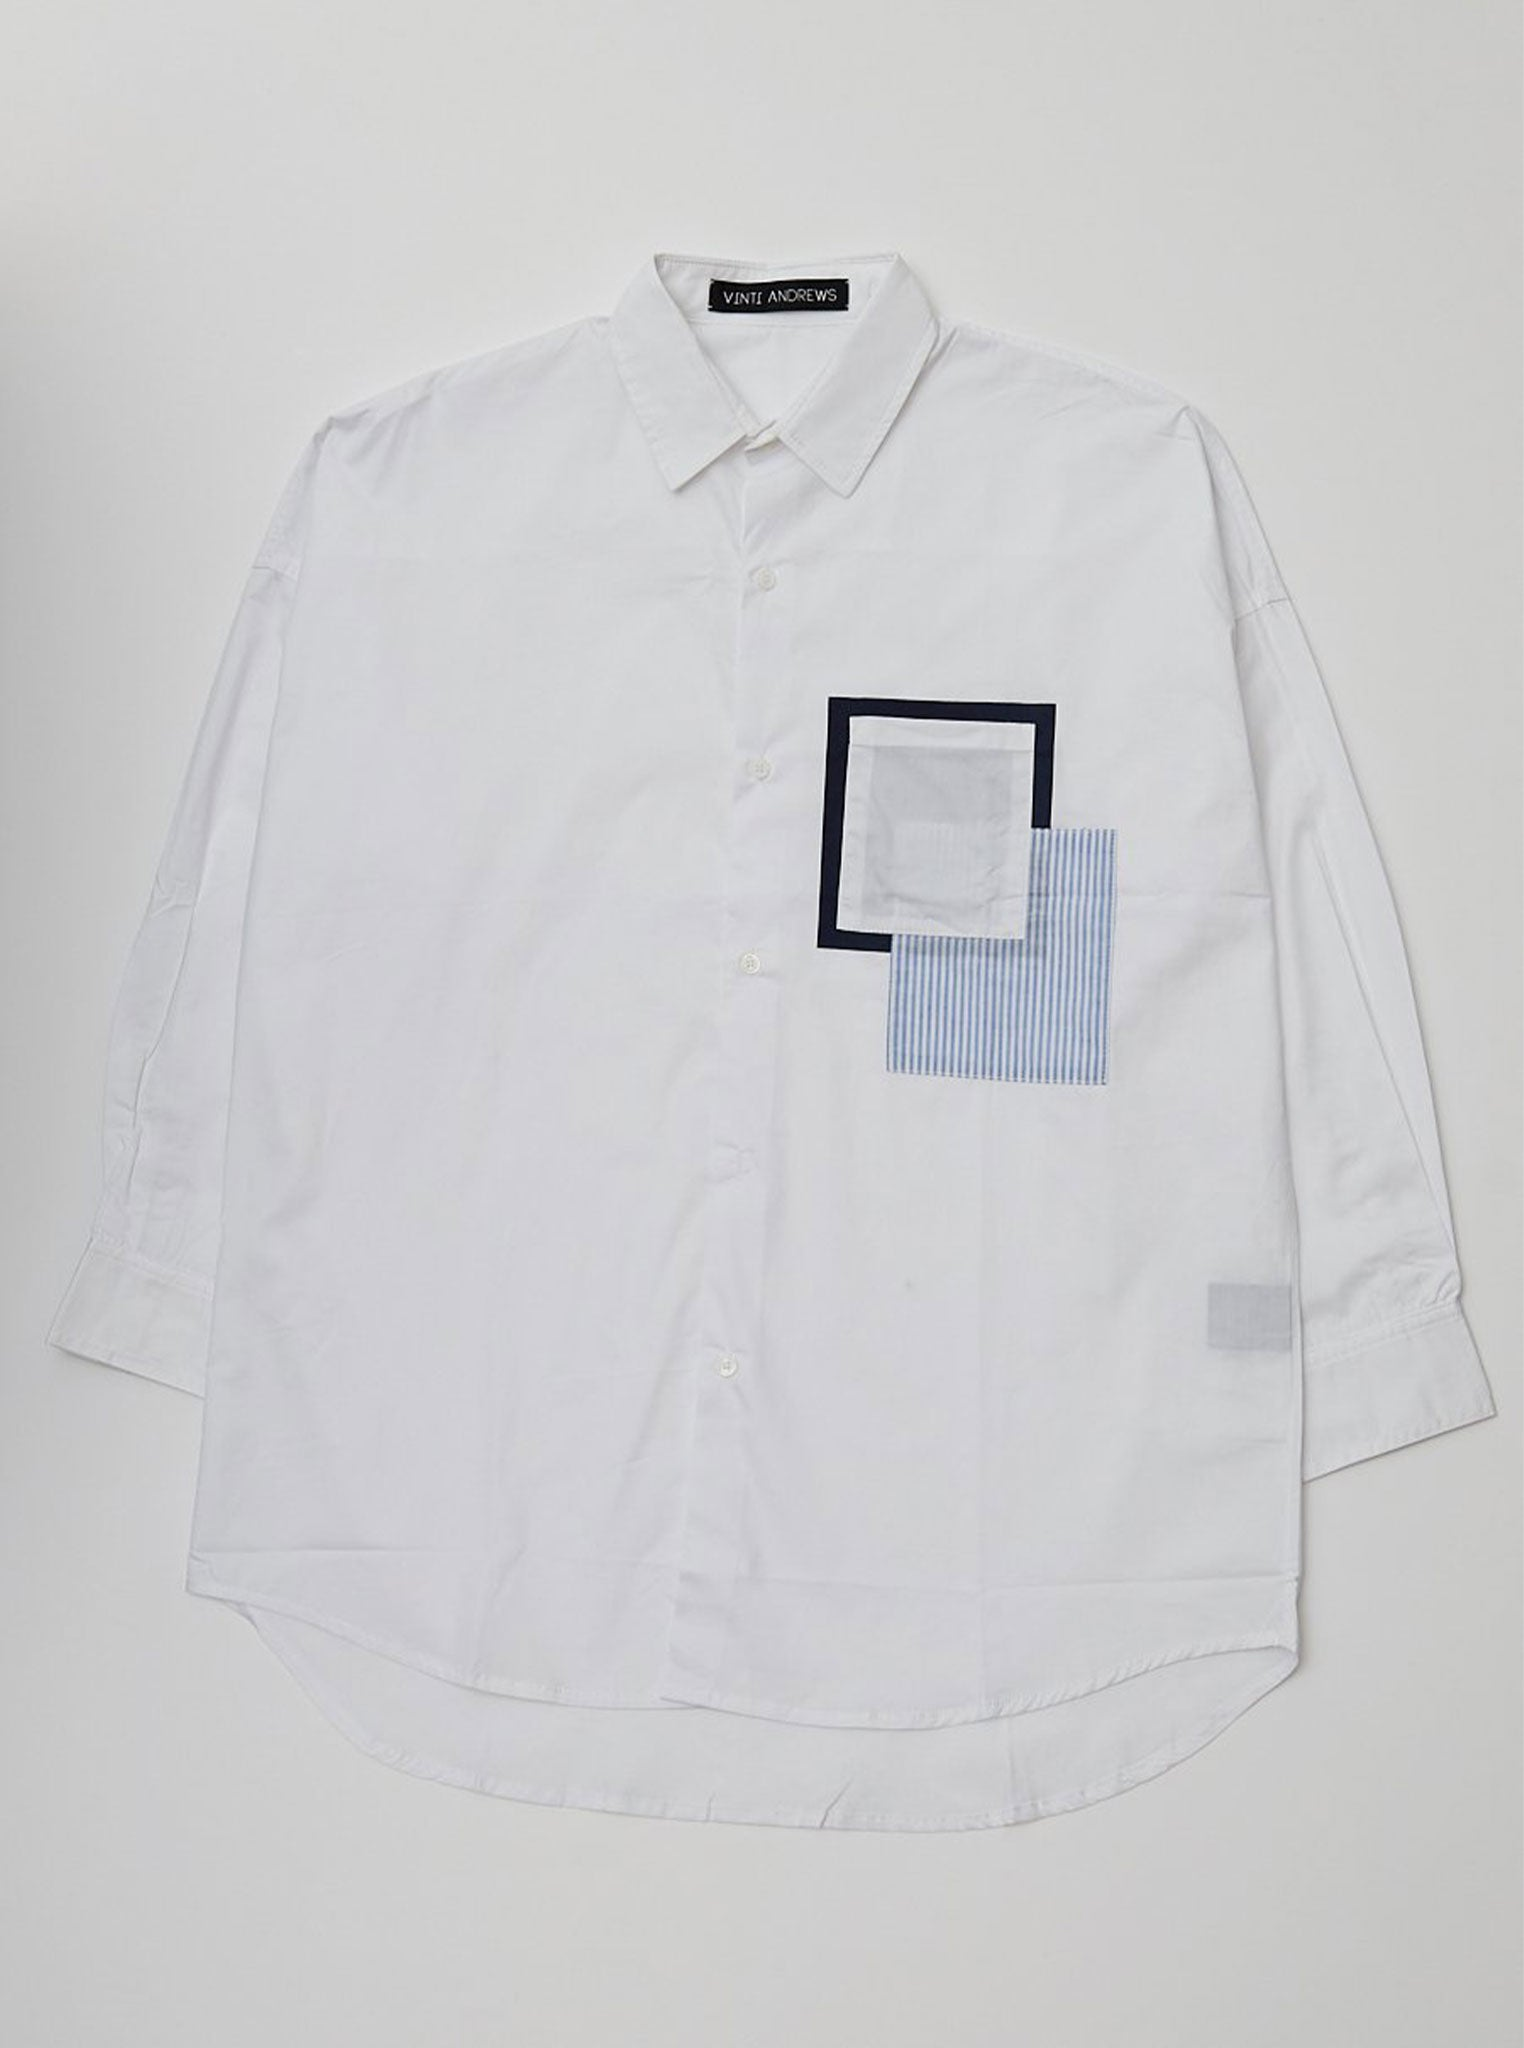 Vinti Andrews Pocket Shirt White